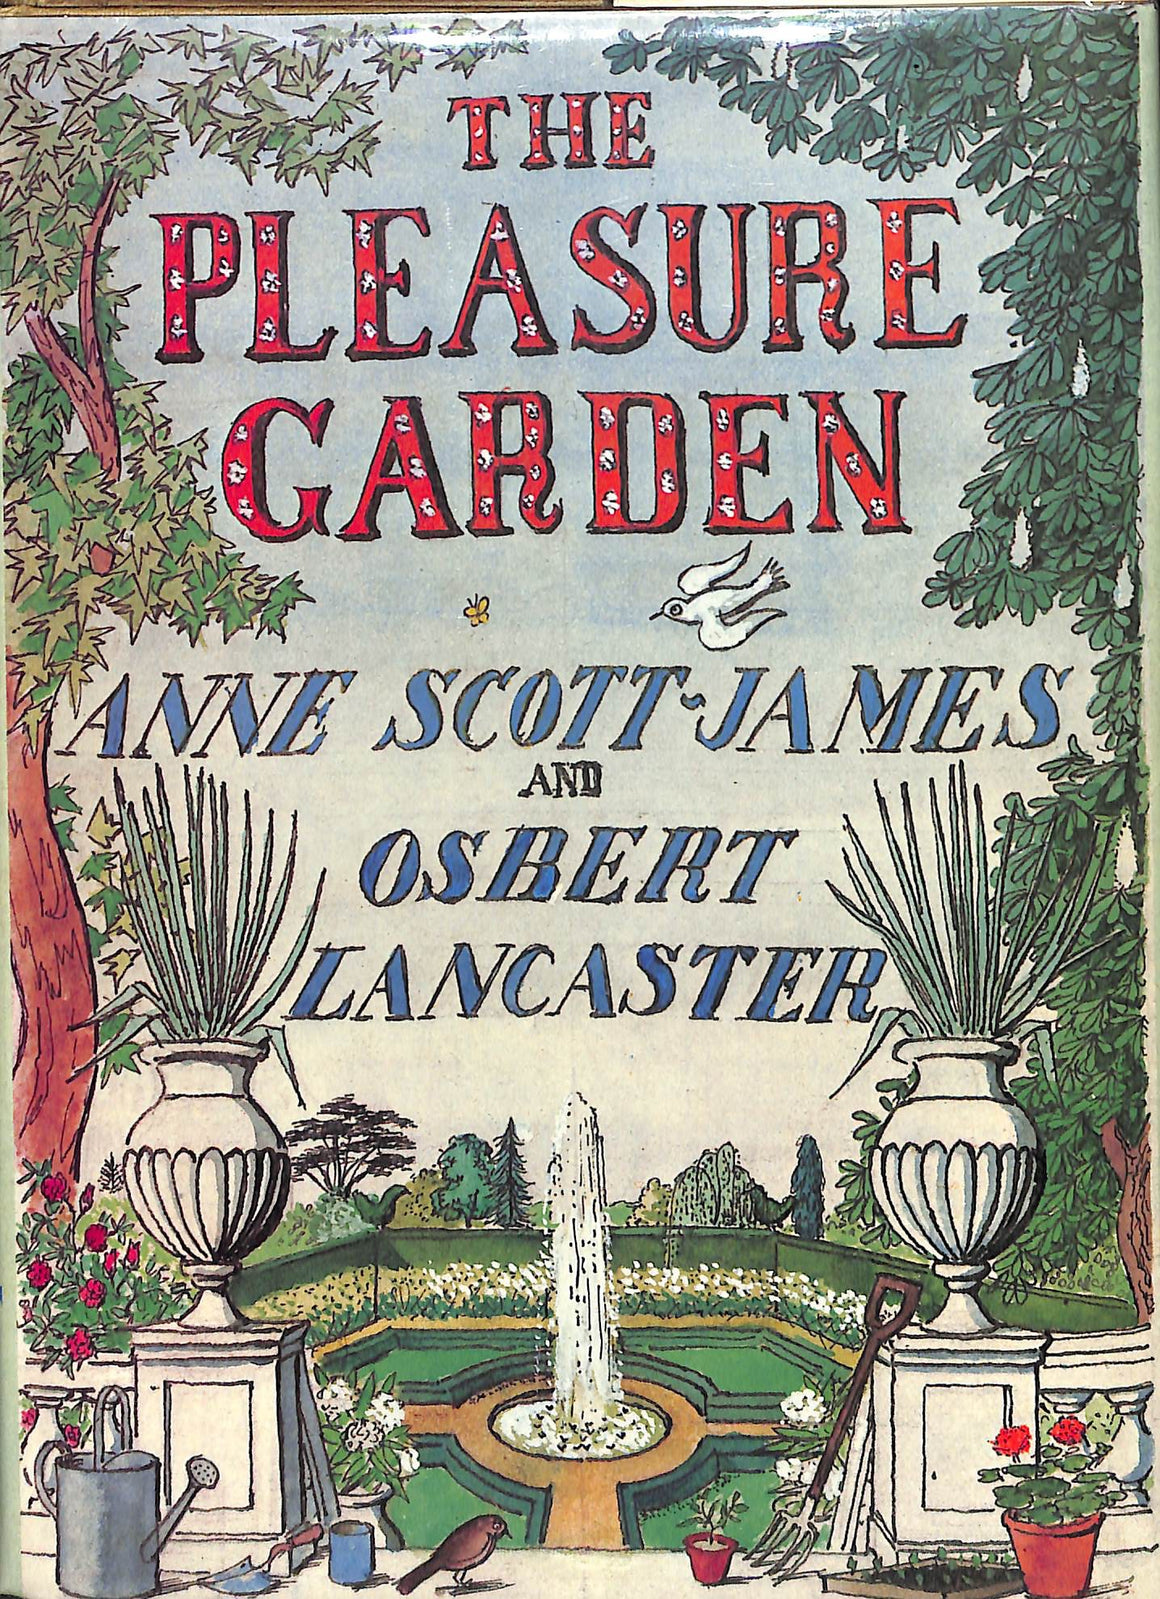 The Pleasure Garden by Anne Scott-James and Osbert Lancaster